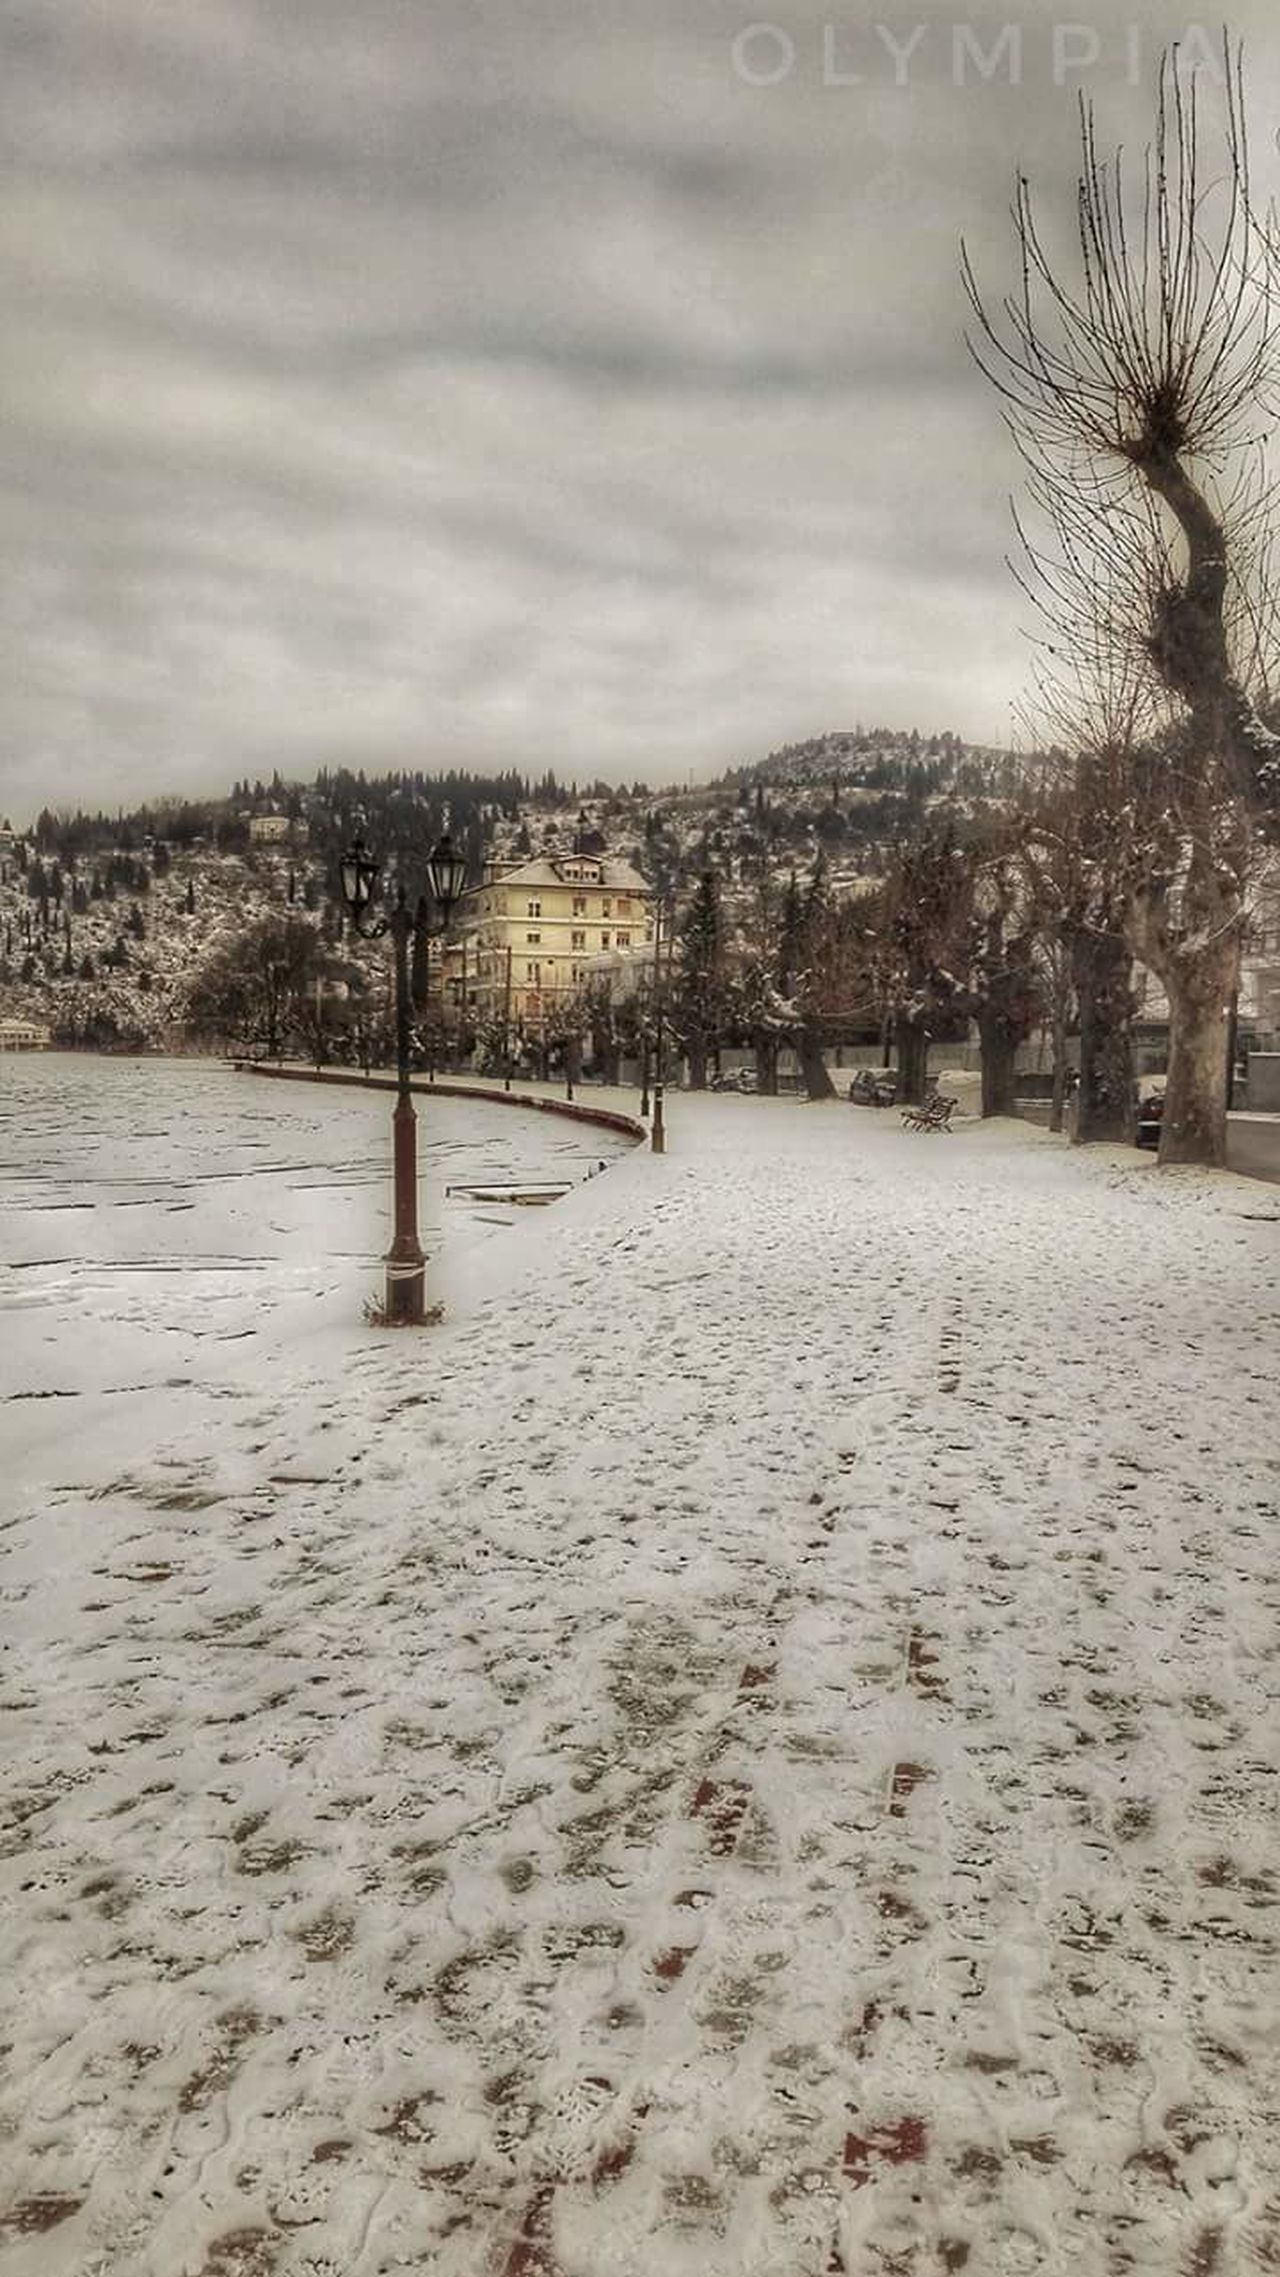 Winter2017 west macedonia kastoriagreece Winter Snow Tree No People Cold Temperature Cloud - Sky Outdoors Nature Sky Beauty In Nature Day Hello World Travel Photography GREECE ♥♥ Nature_collection Landscape_collection EyeEmNatureLover Beauty In Nature Nature Photography Nature_collection Nature Streetphotography City View  Enjoying The View Hellas Travels Travel